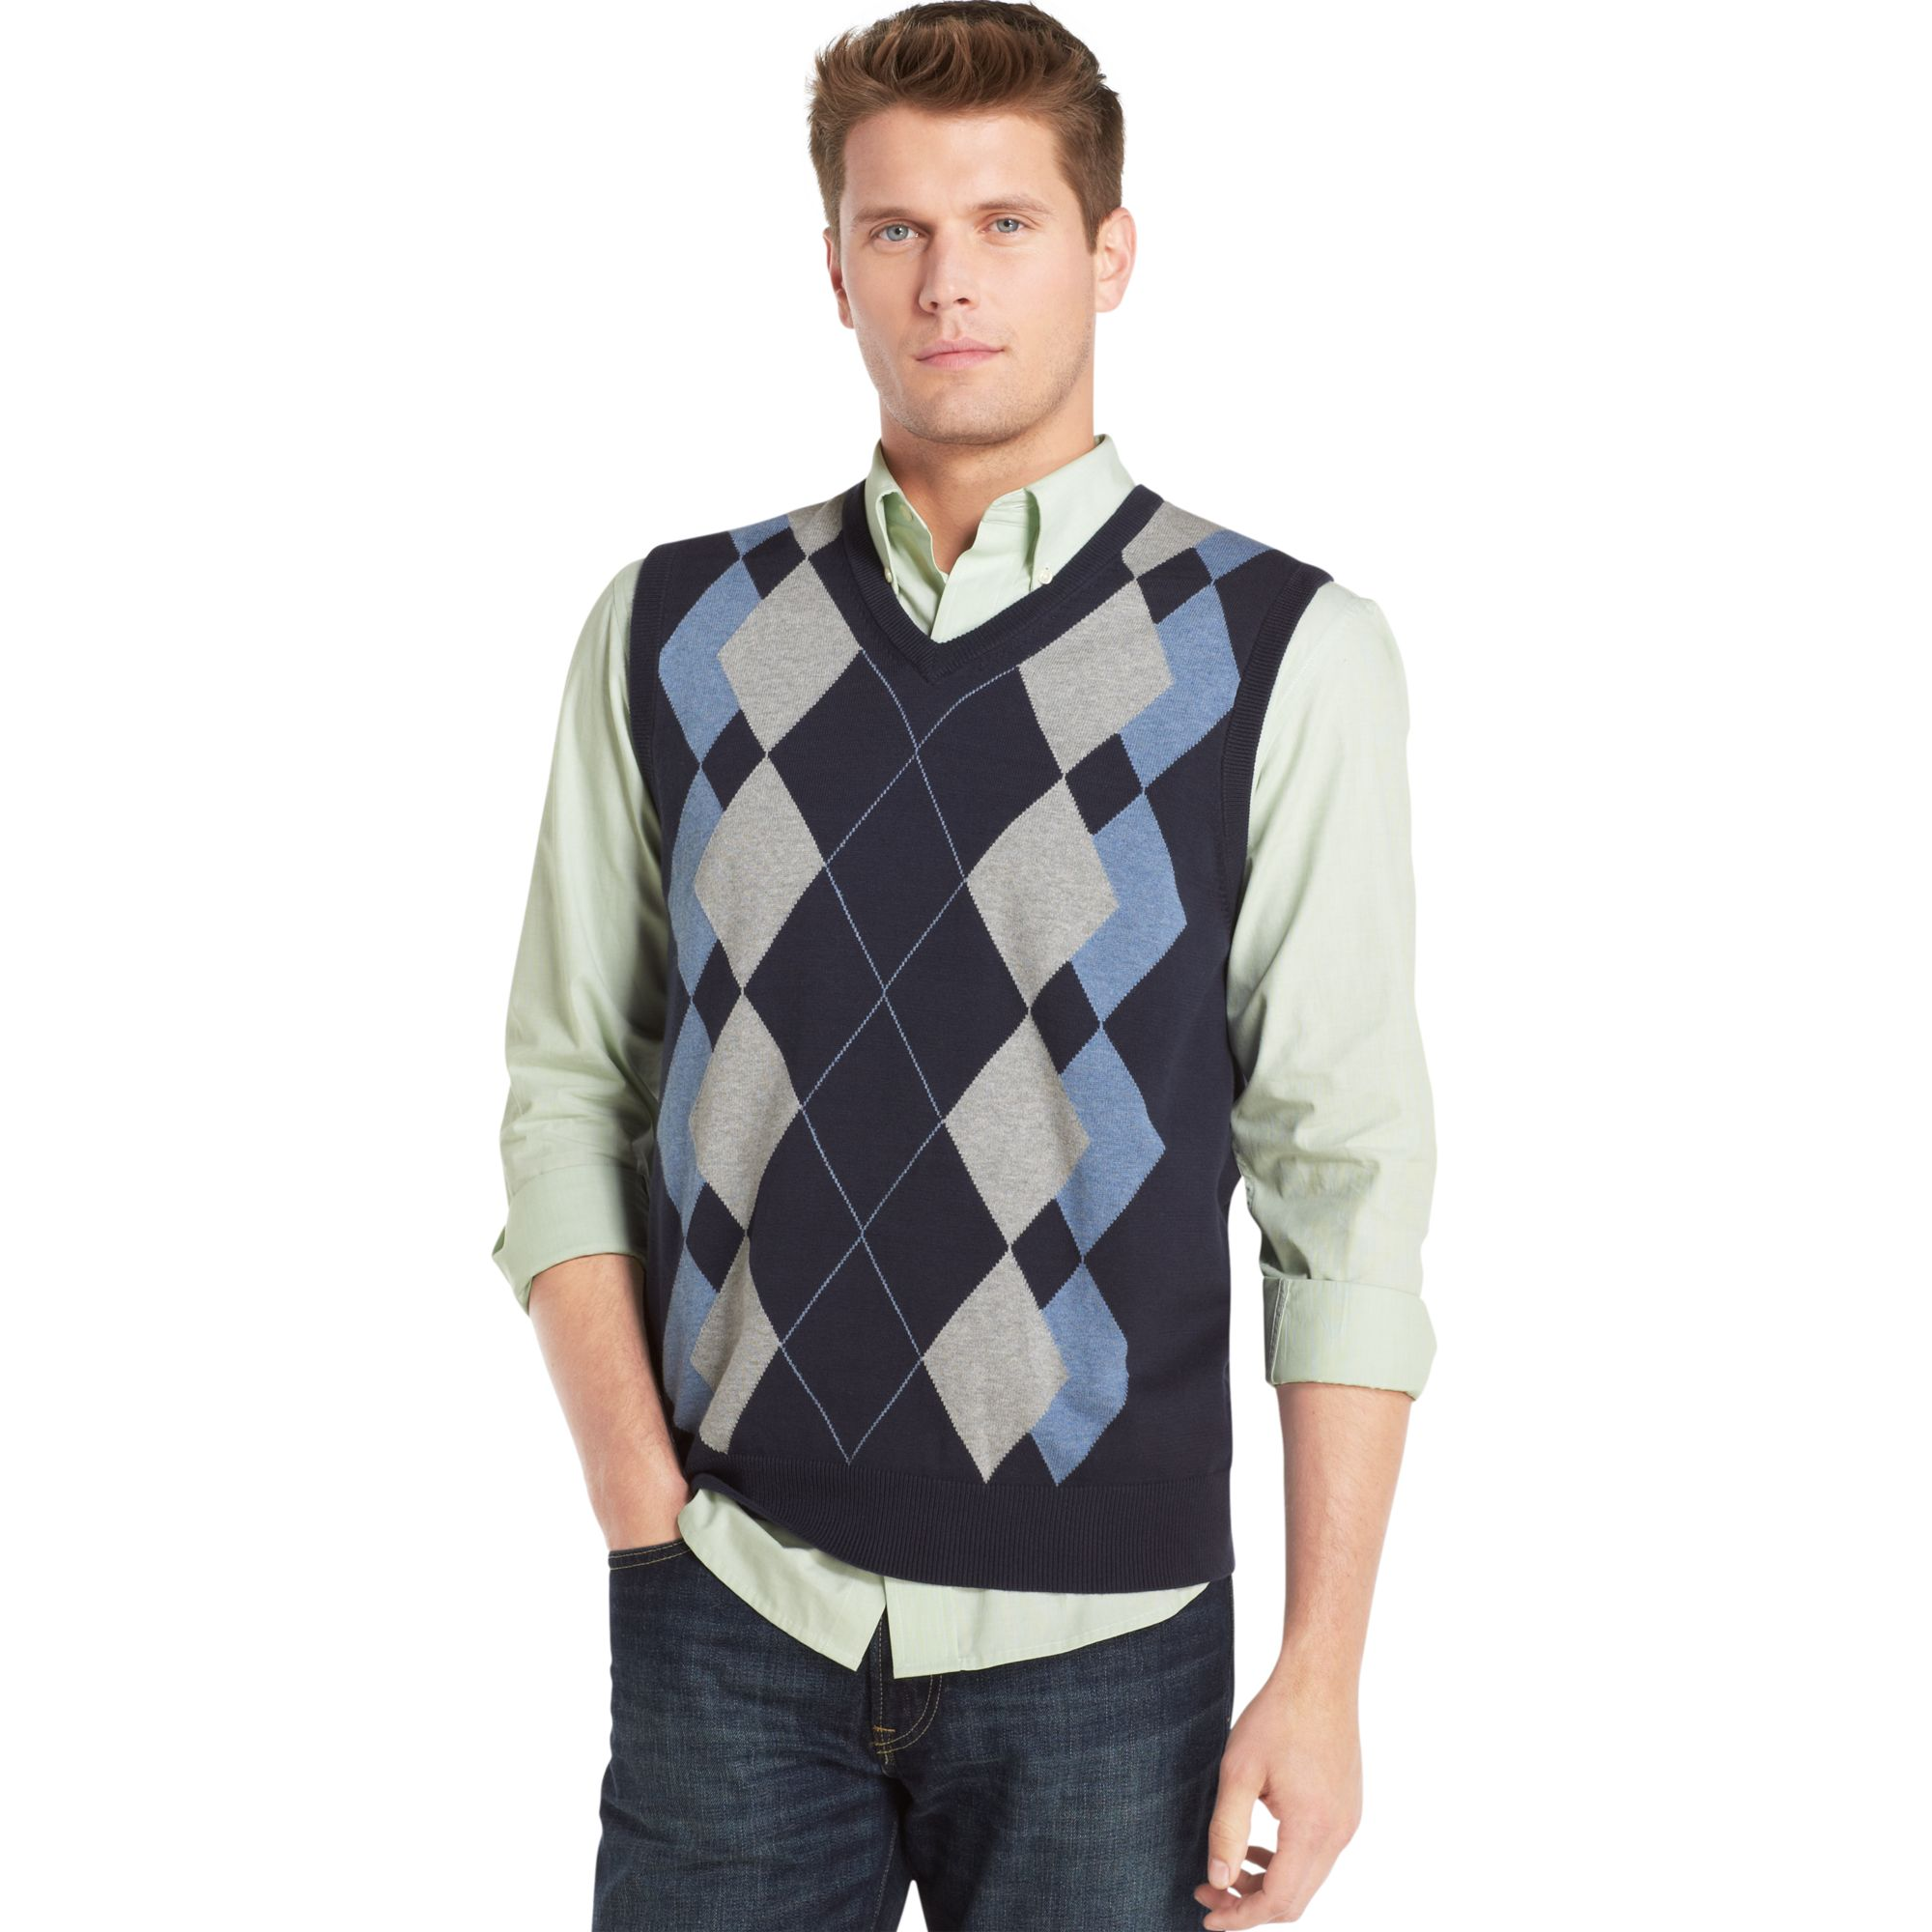 Argyleculture Argyle Culture Men's Red Sweater Size XXL. Sold by Movaz Trade. $ Lands' End Men's Big & Tall Cotton Drifter Argyle Crew Sweater. Sold by Lands' End. $ Argyleculture Argyle Culture Men's Midnight Long Sleeve Sweater Size L. Sold by Movaz Trade. $ $